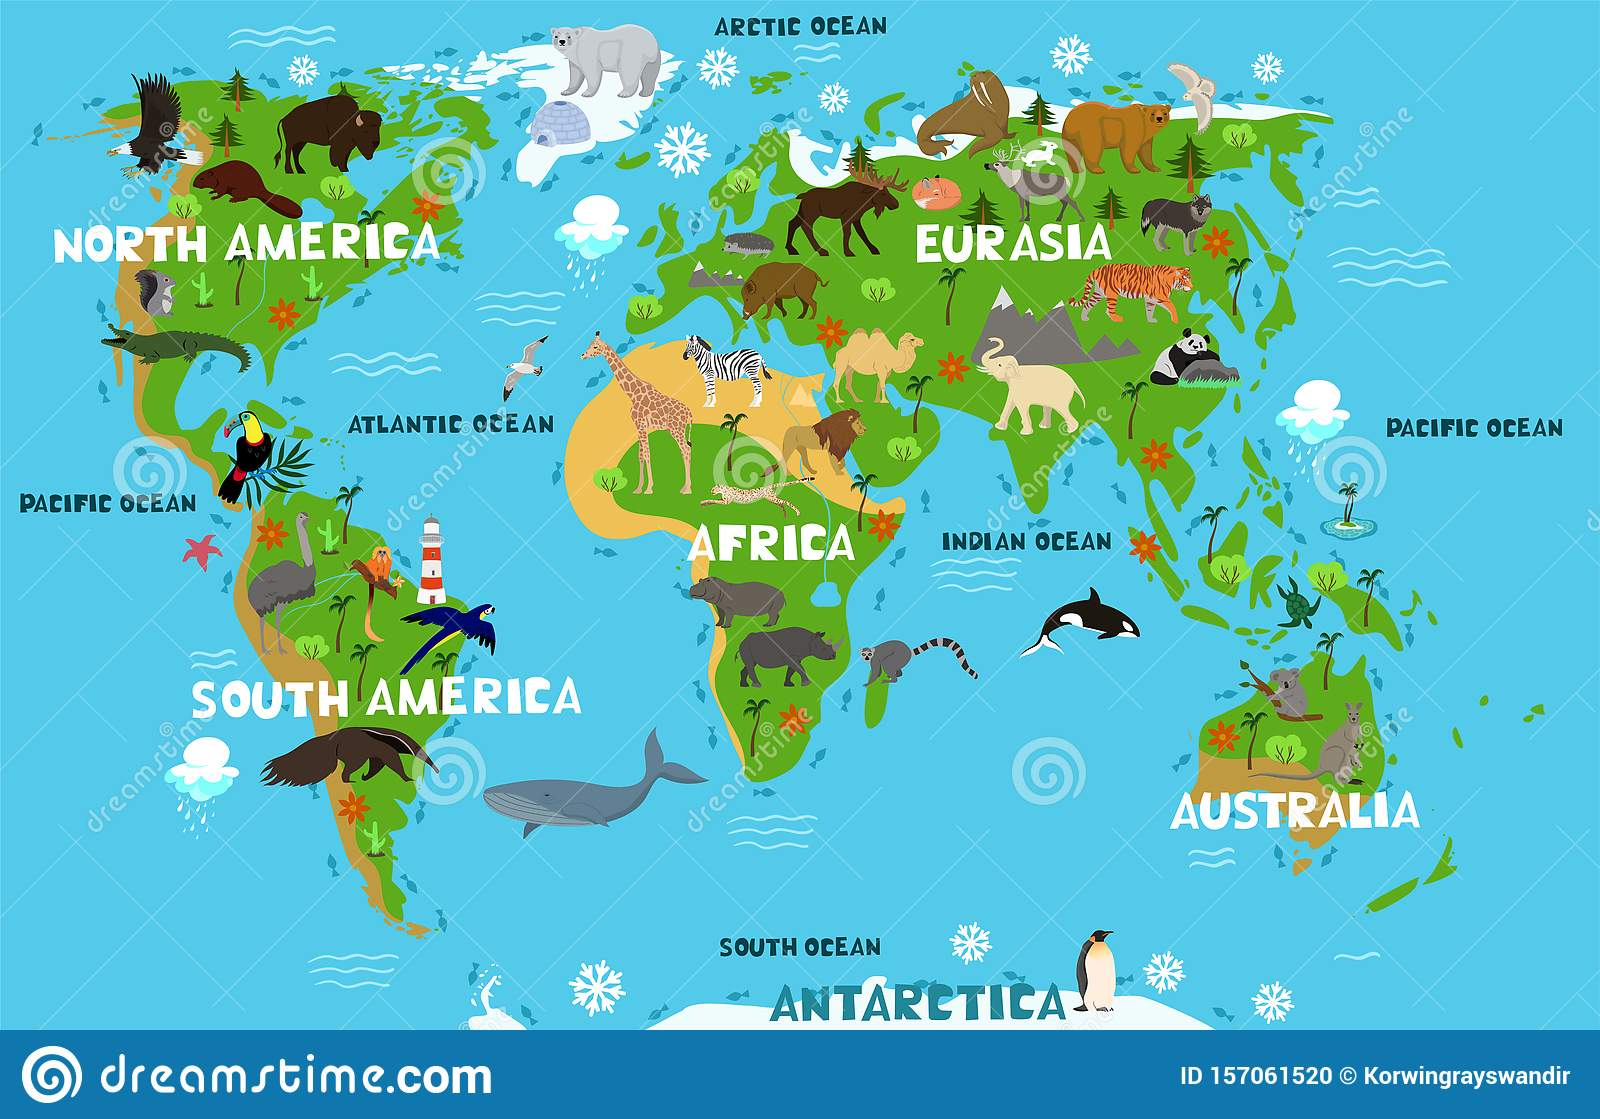 Picture of: Children S World Map With The Names Of Continents And Oceans Animals On The Mainland Vector Graphics Stock Photo Image Of Nature Continent 157061520